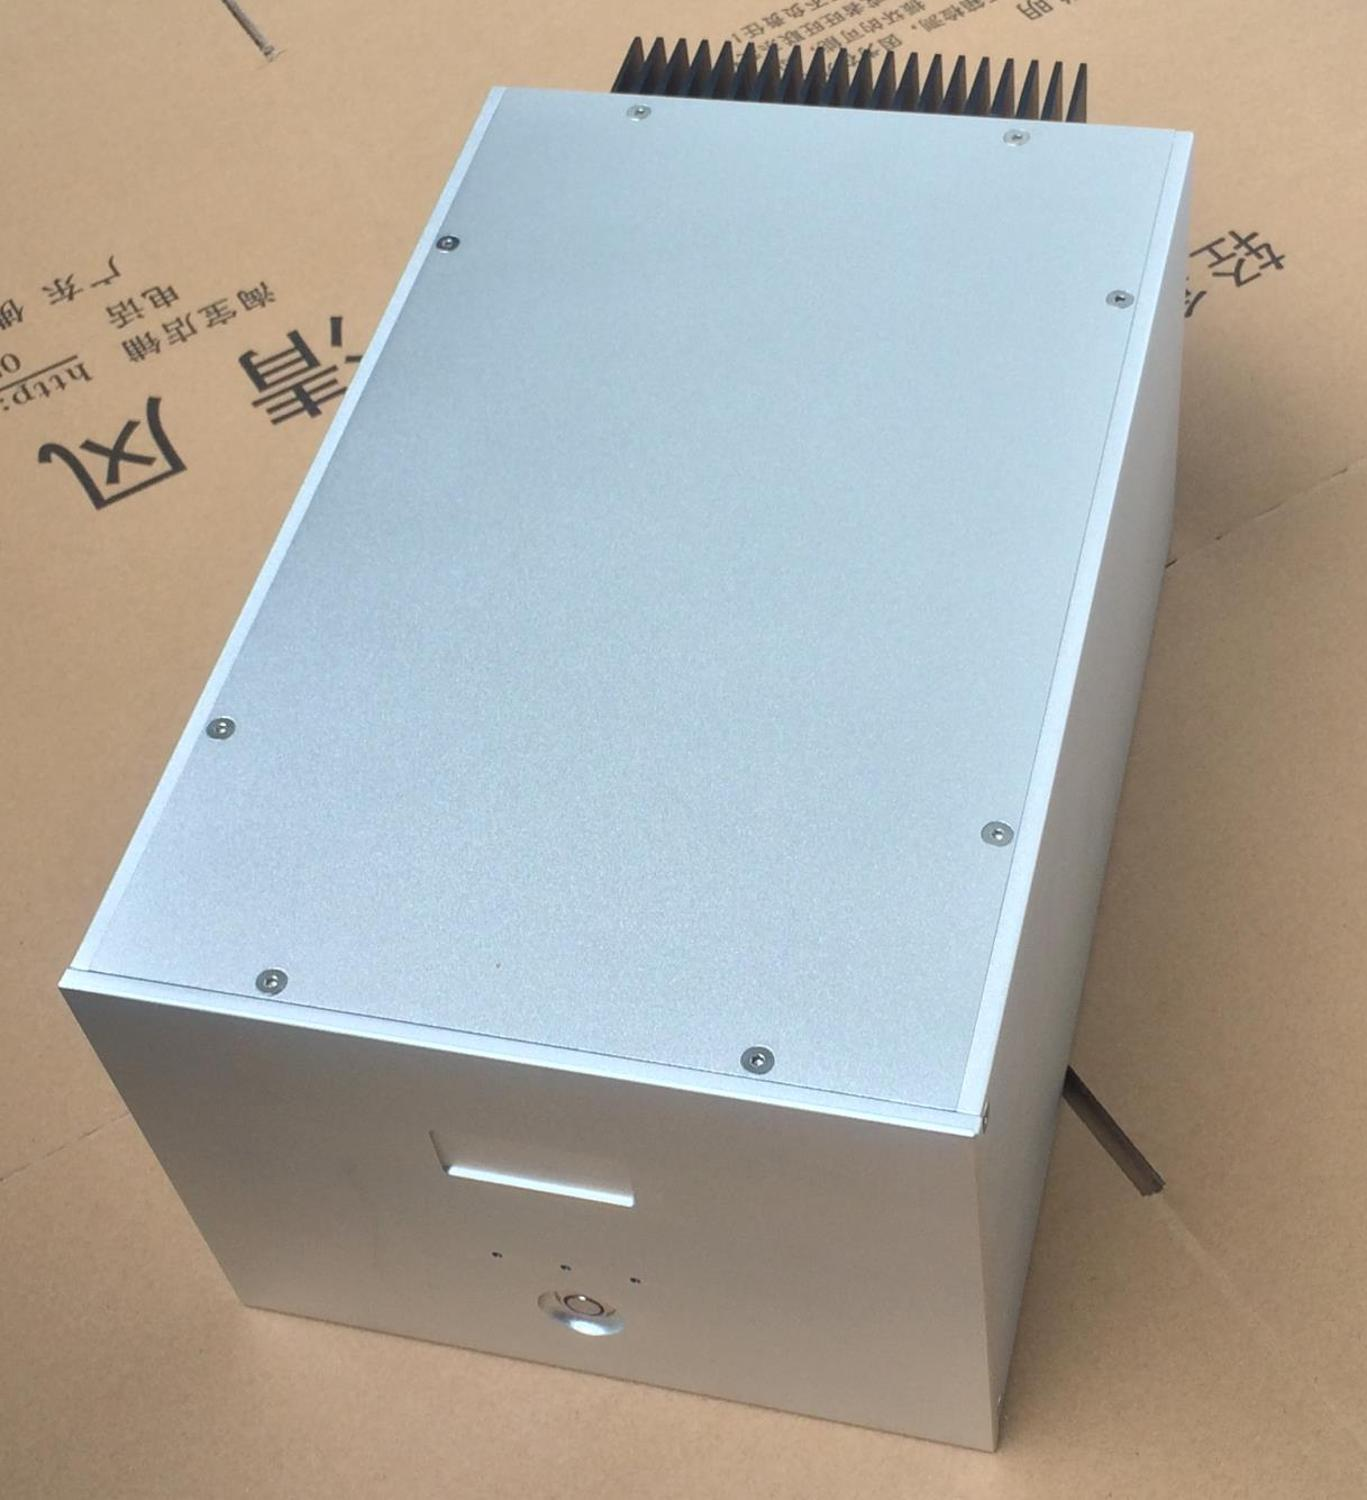 DIY CASE 235*180*366mm All aluminum amplifier chassis/ After the class amplifier / Mono chassis / AMP Enclosure / case / DIY box запчасти для мобильных телефонов zte q505t q501t n986 q503u q201t